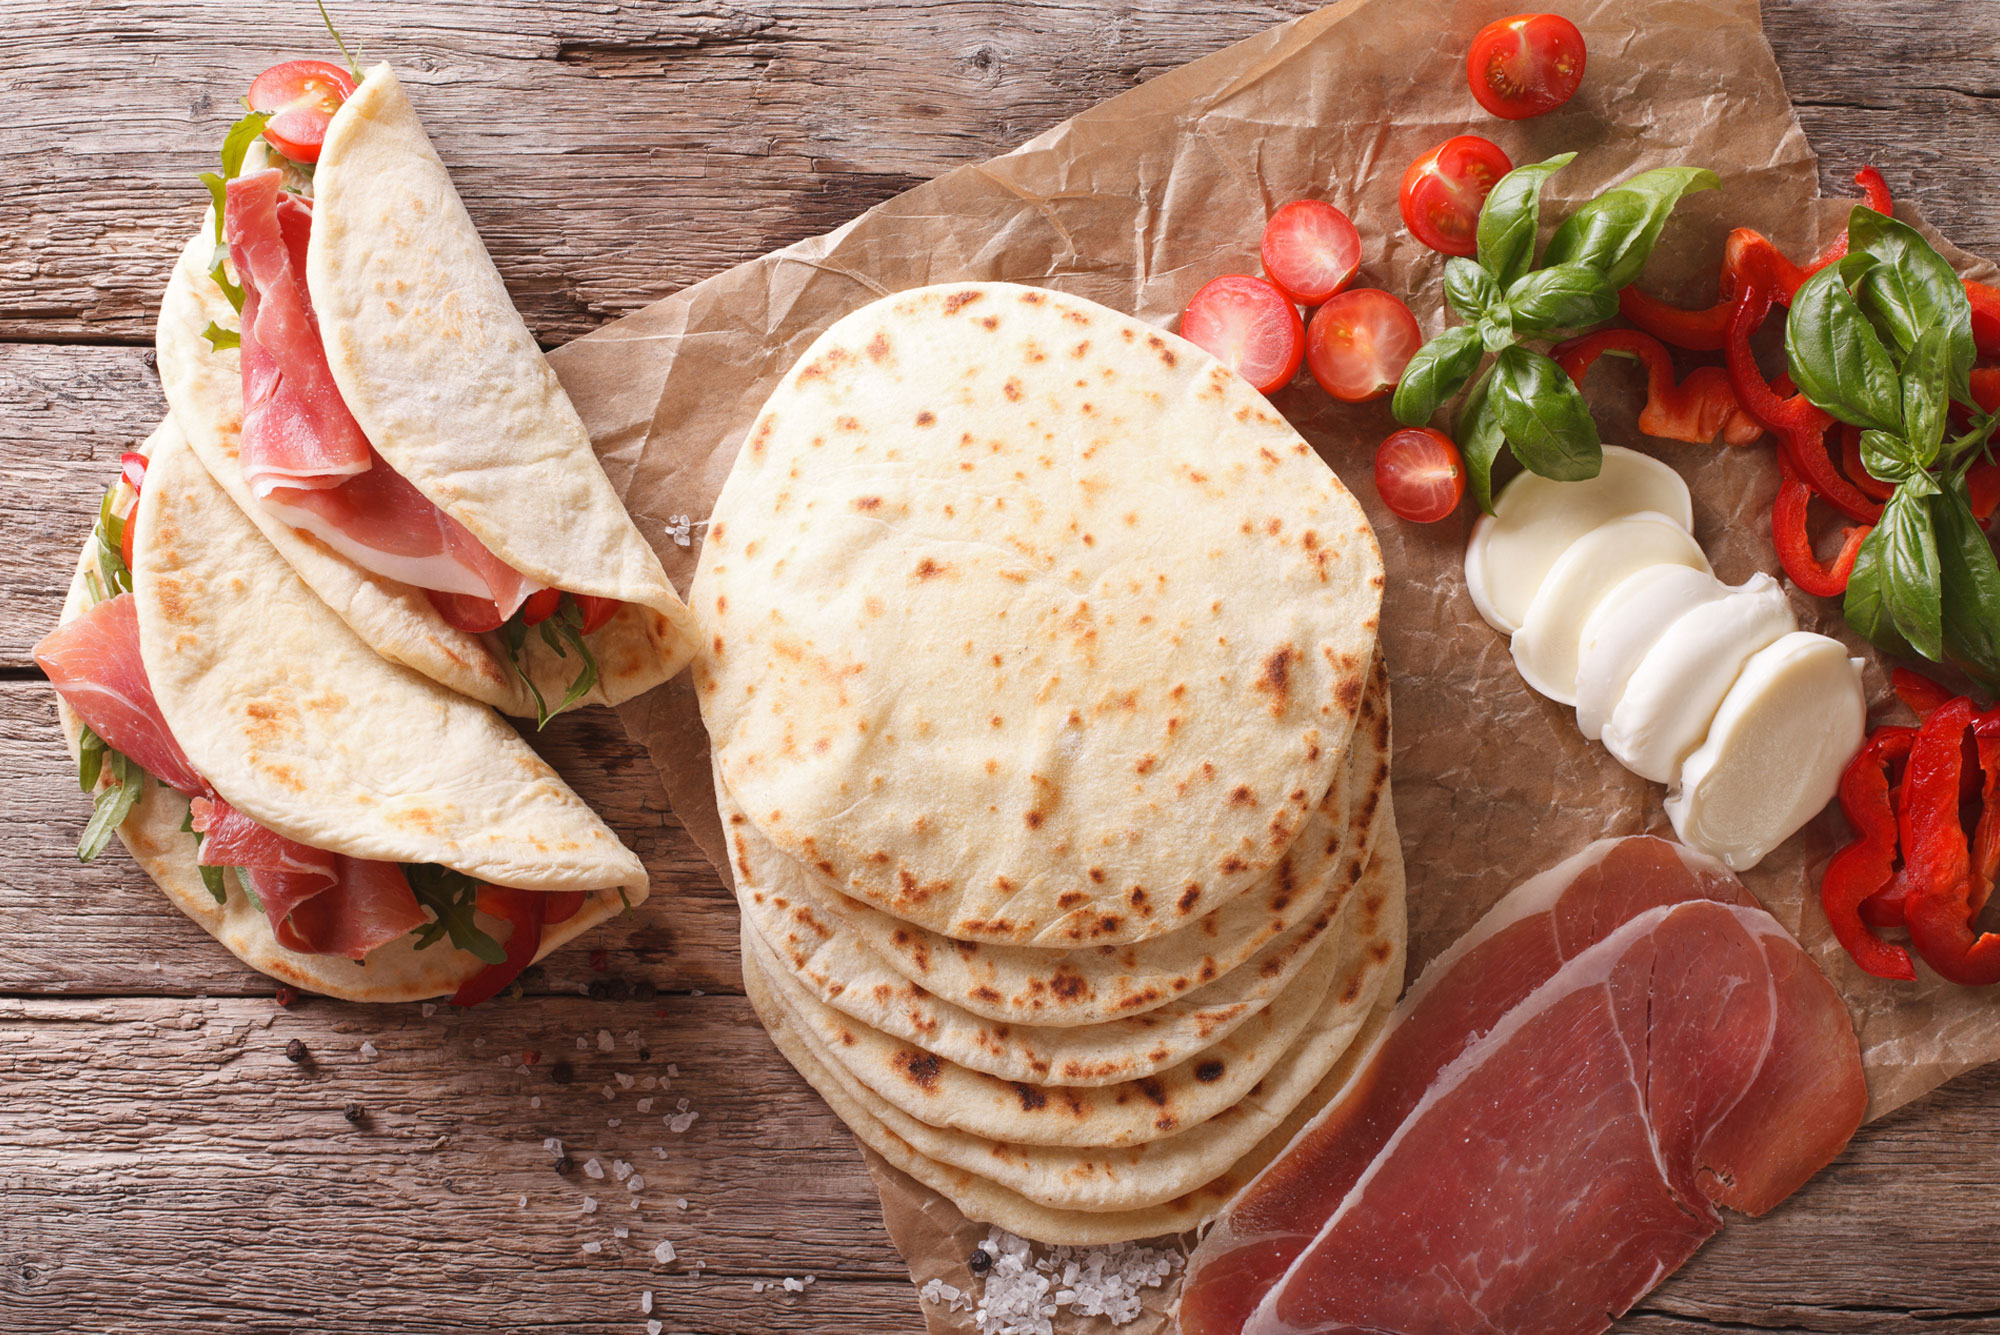 come preparare la buonissima piadina romagnola grand chef evolution